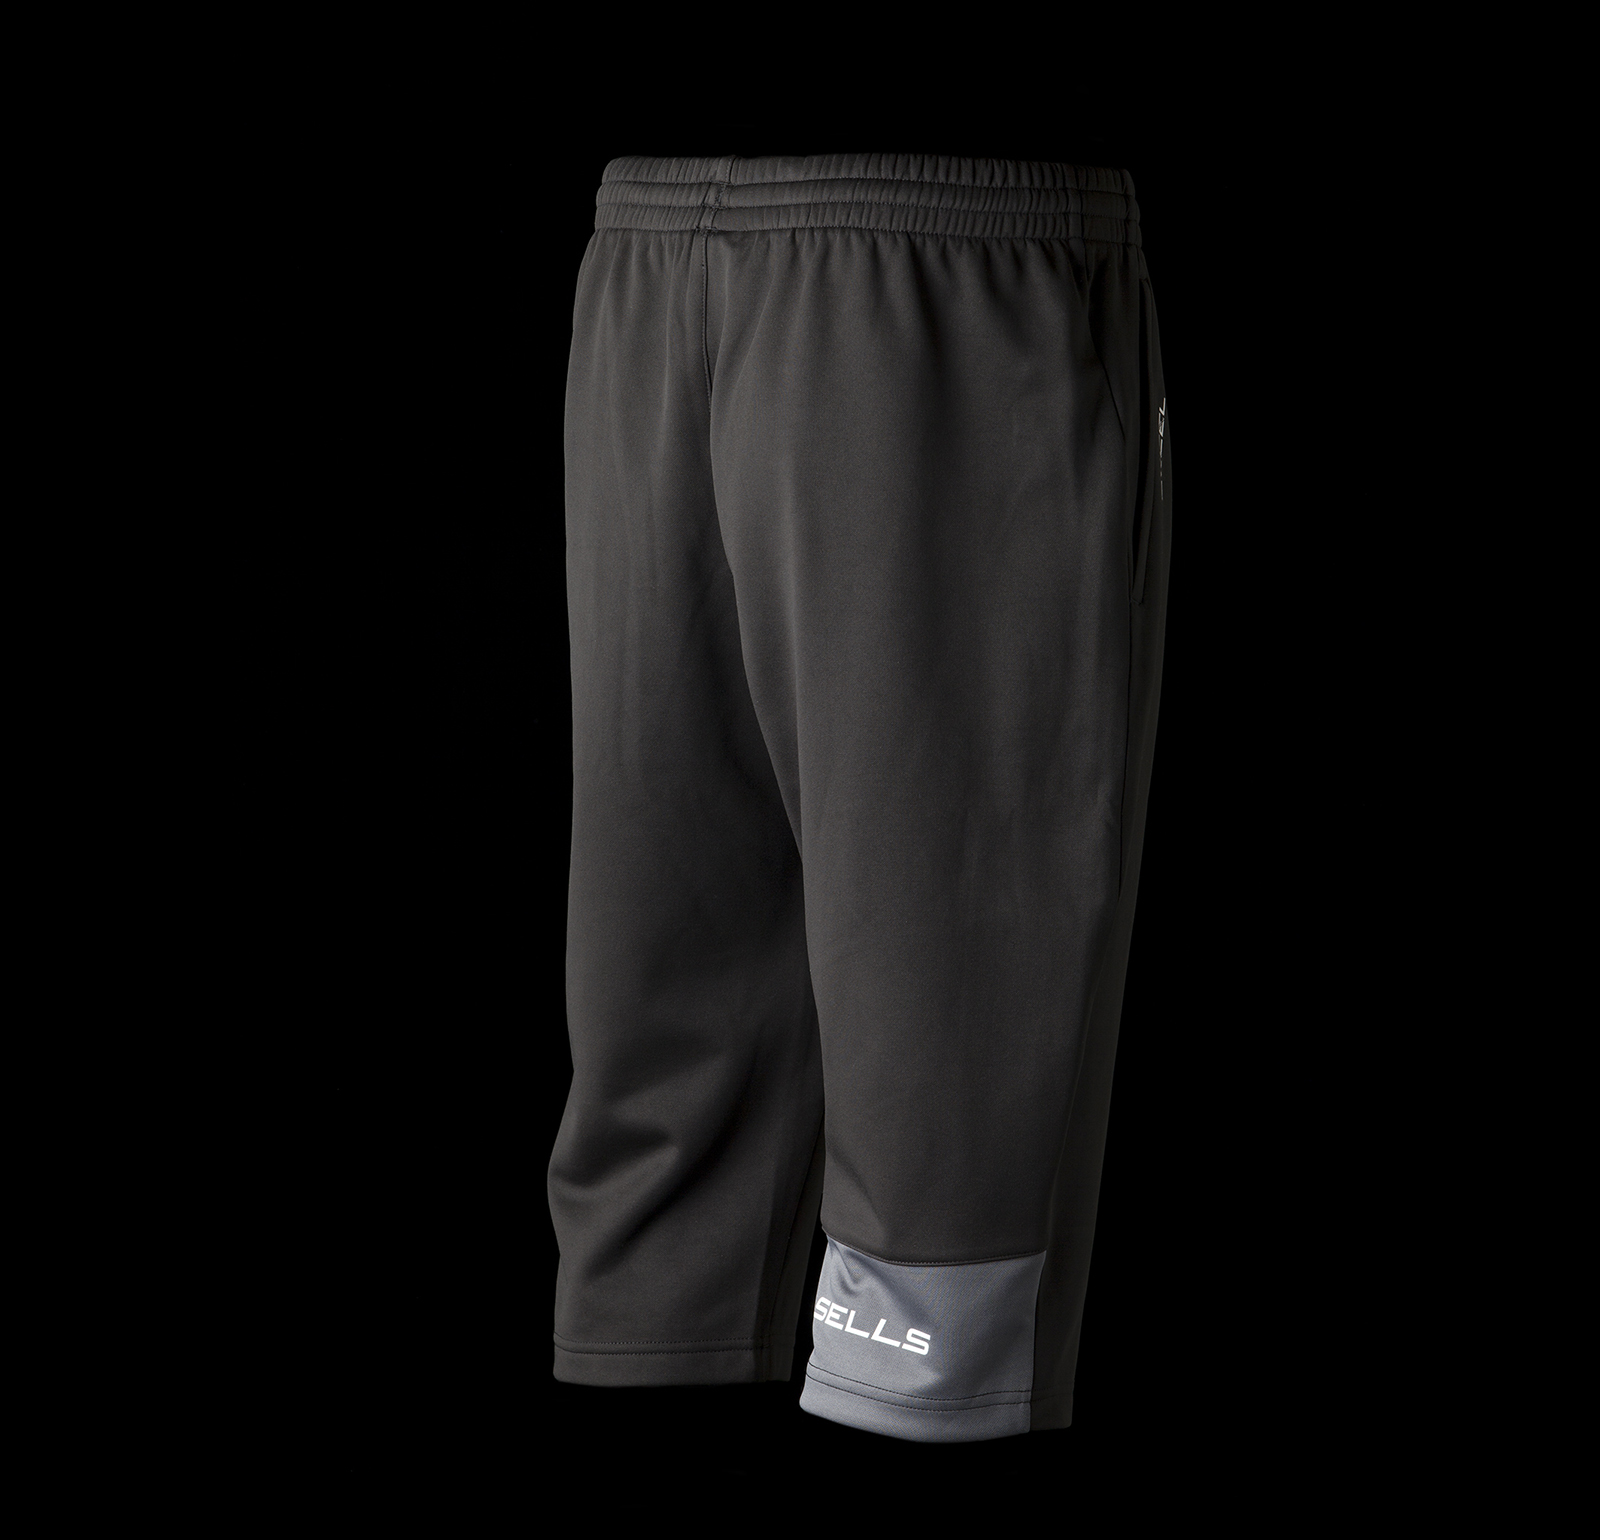 excel-3-4-pant-promo-46